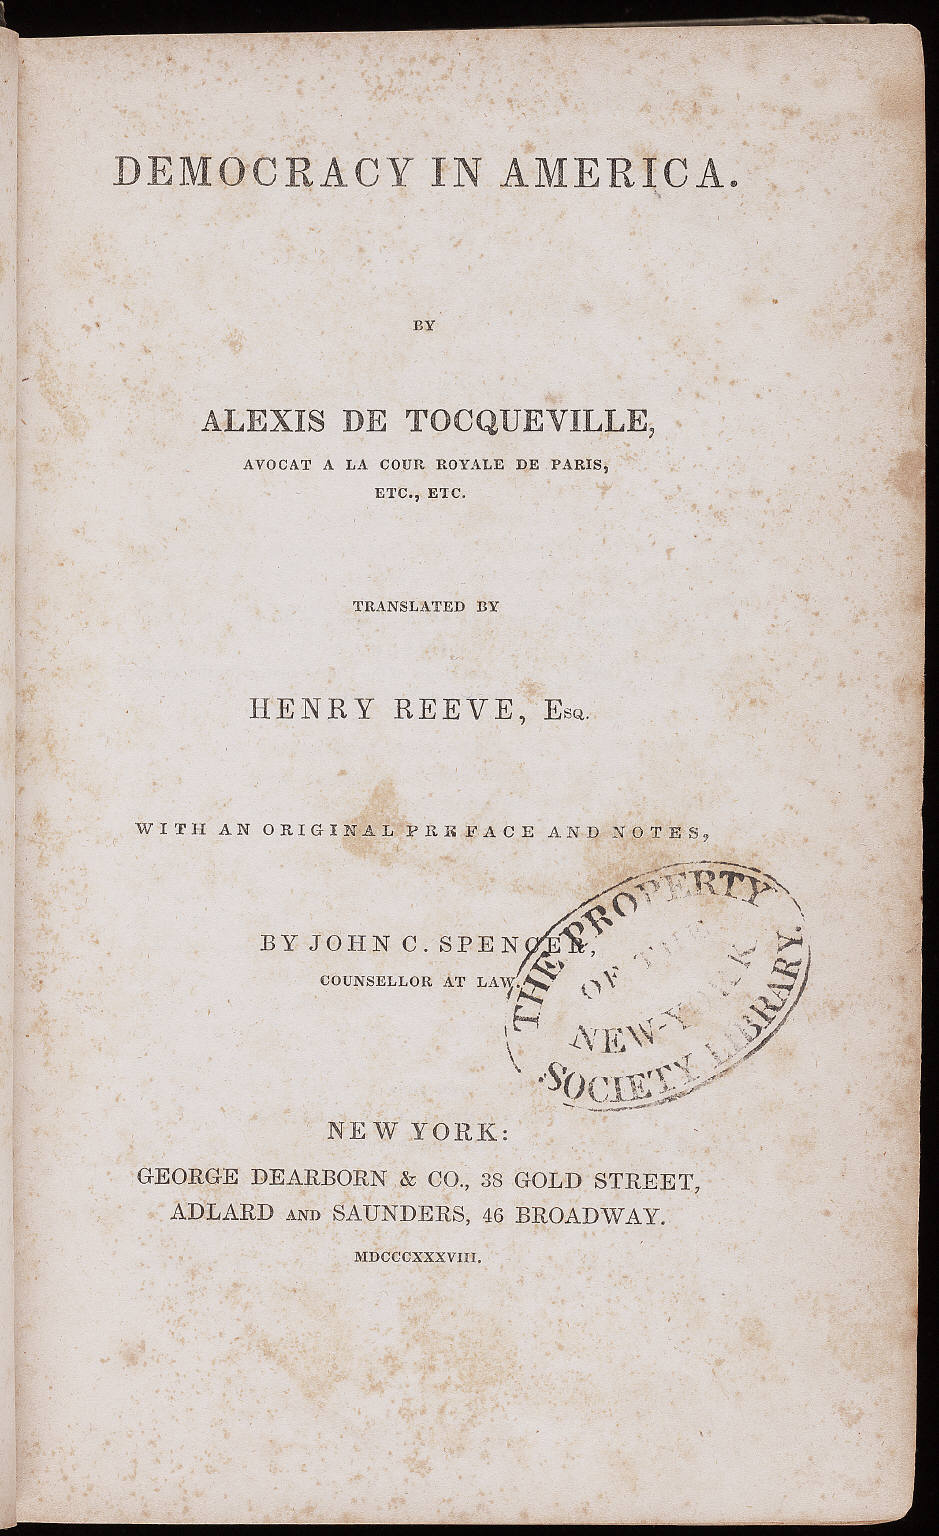 Democracy_in_America_by_Alexis_de_Tocqueville_title_page.jpg